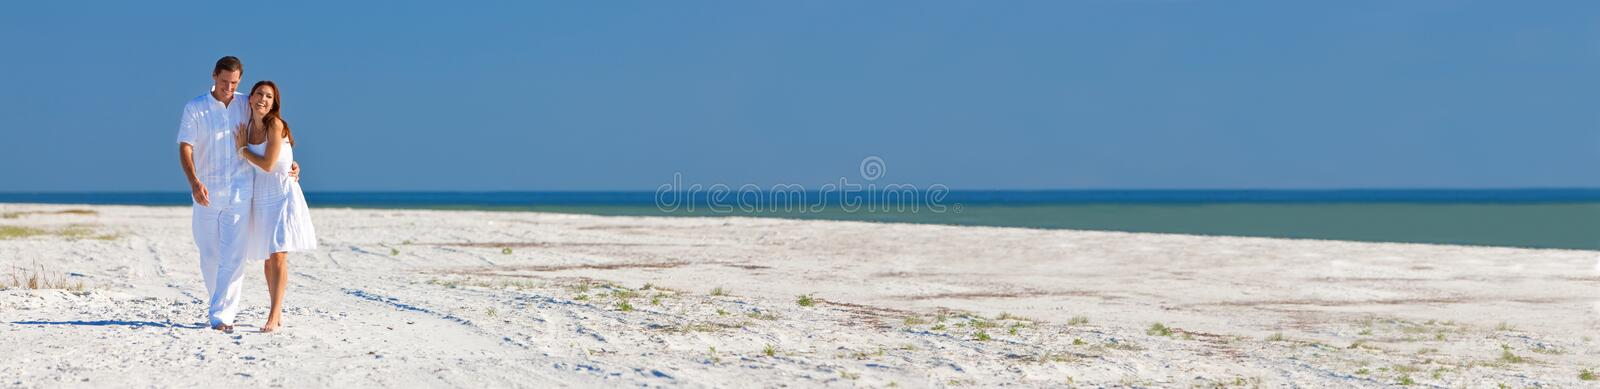 Romantic Man Woman Couple Walking on A Beach Panorama Web Banner royalty free stock images